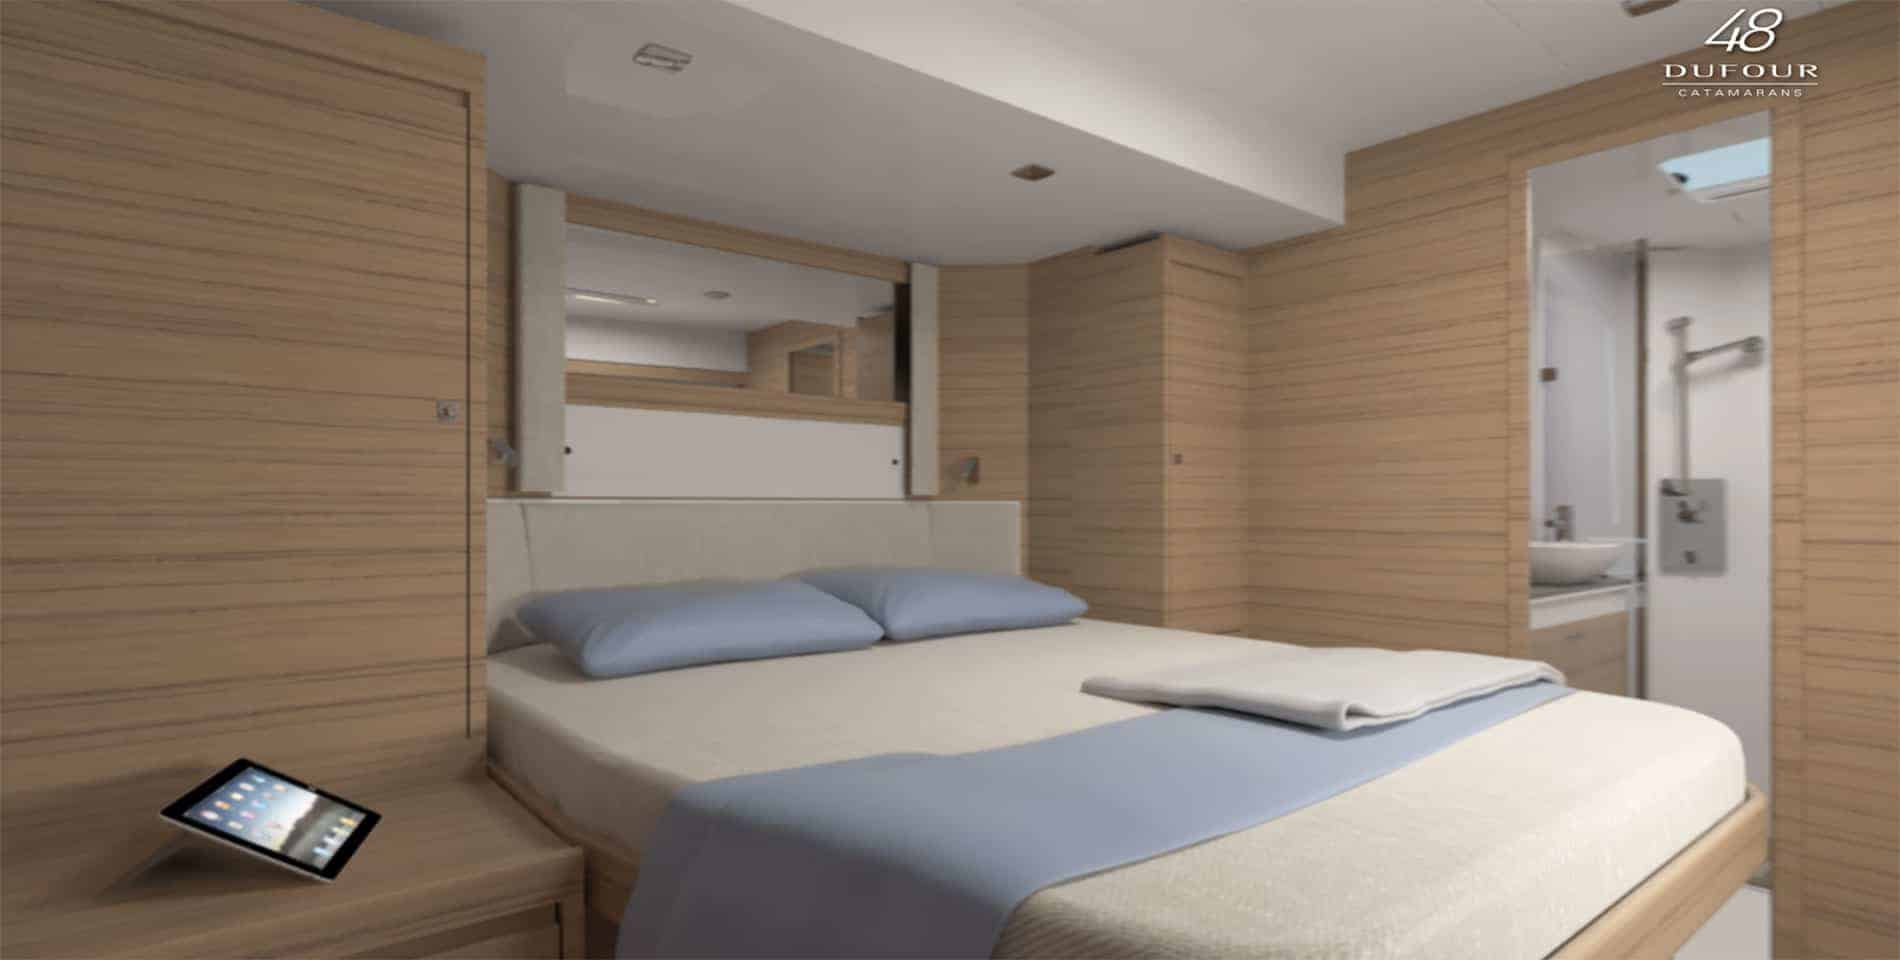 Made, cozy bed in a cabin of the Dufour Catamaran 48 with a tablet on the bedside table